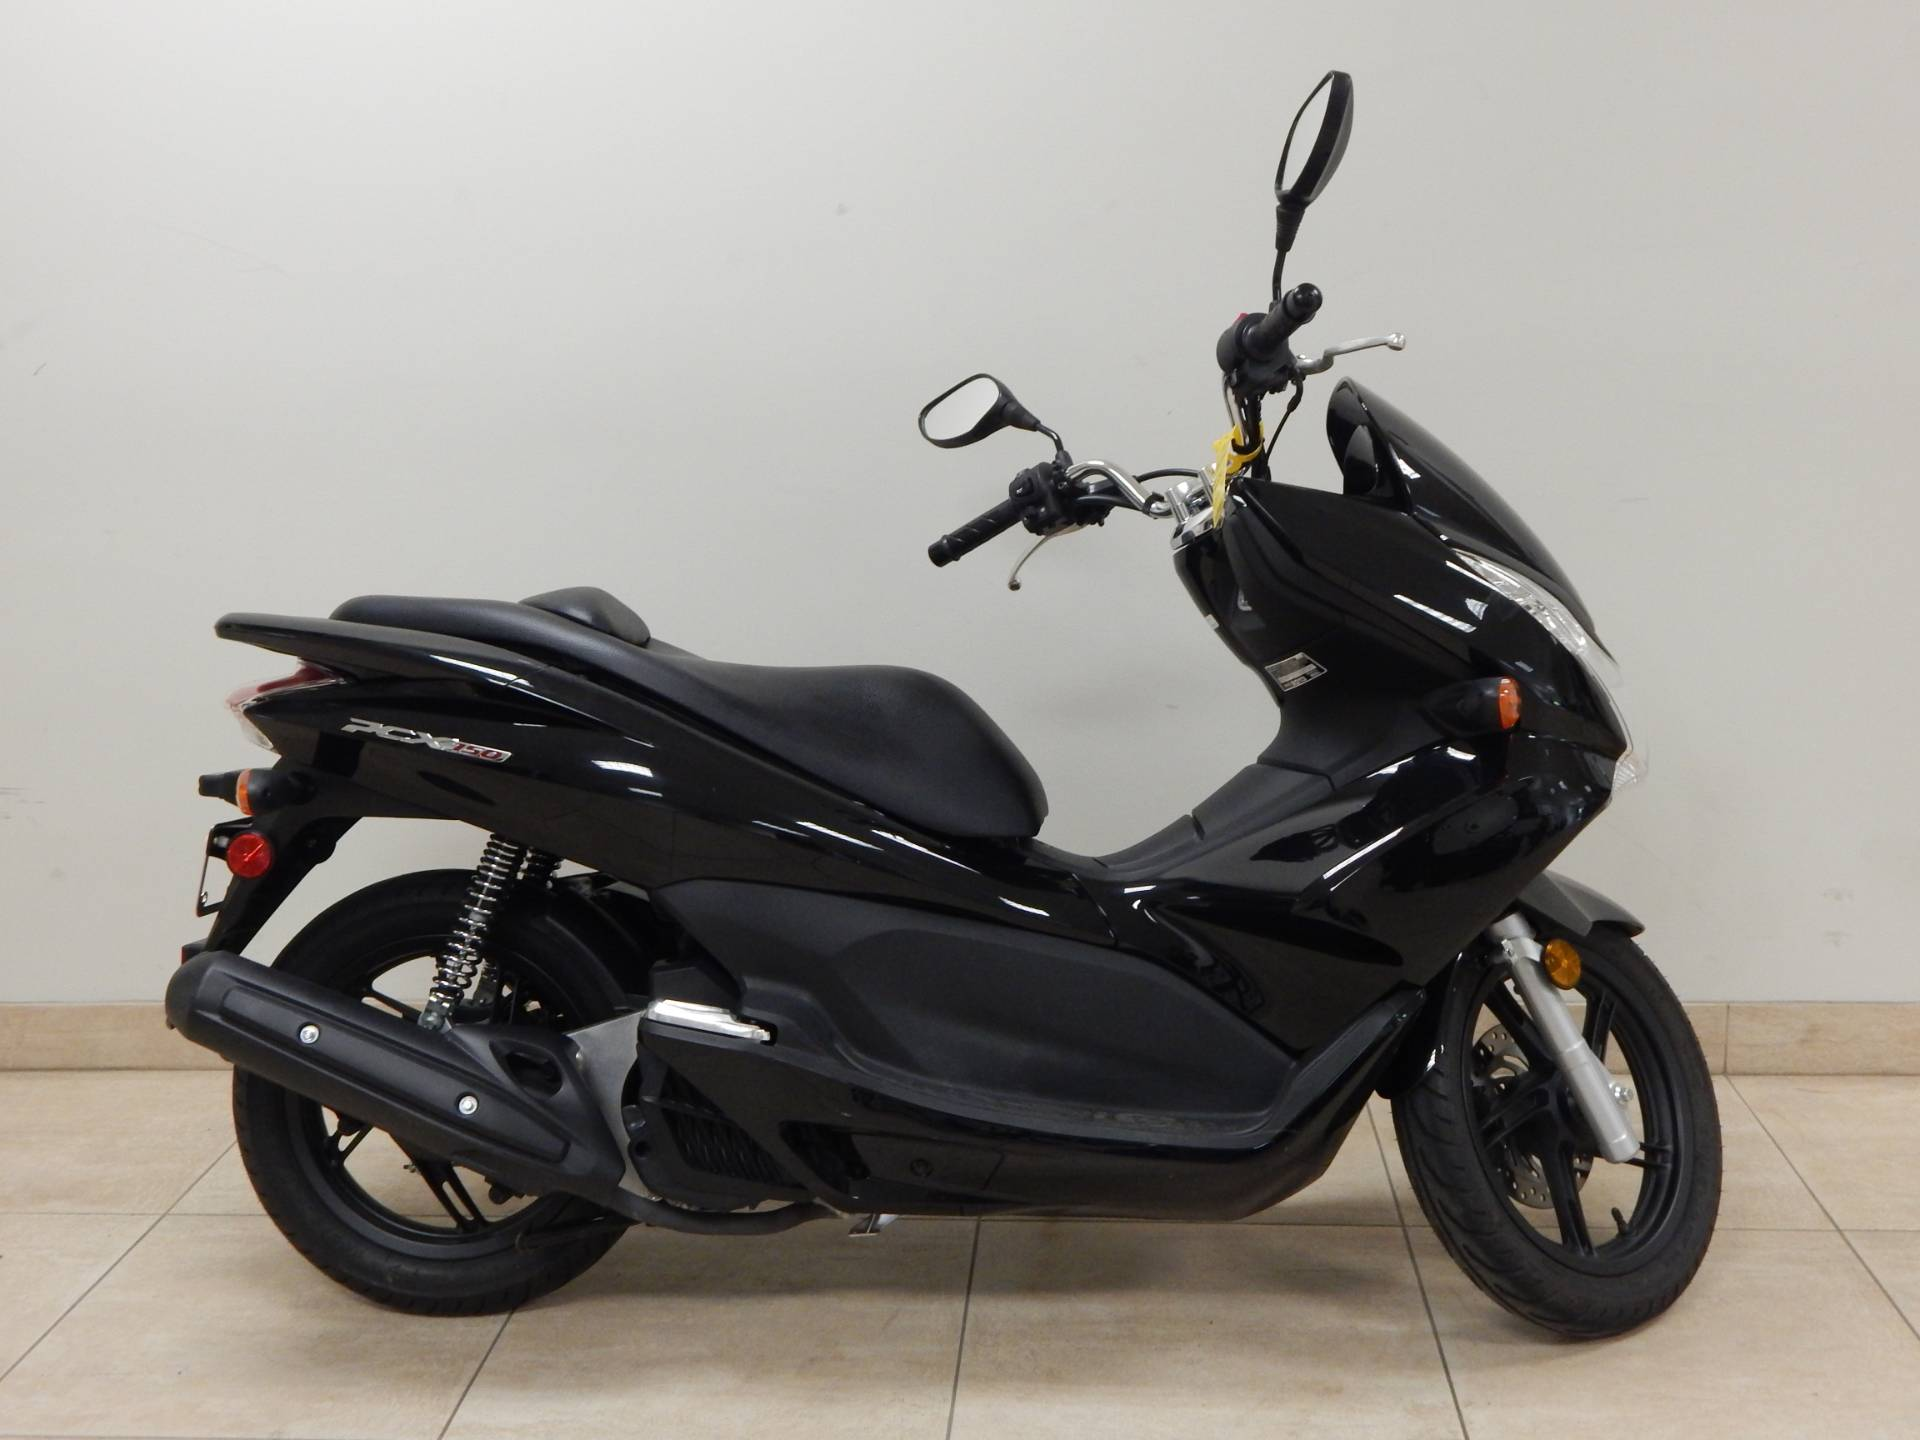 Used 2013 Honda PCX150 Scooters in Concord NH